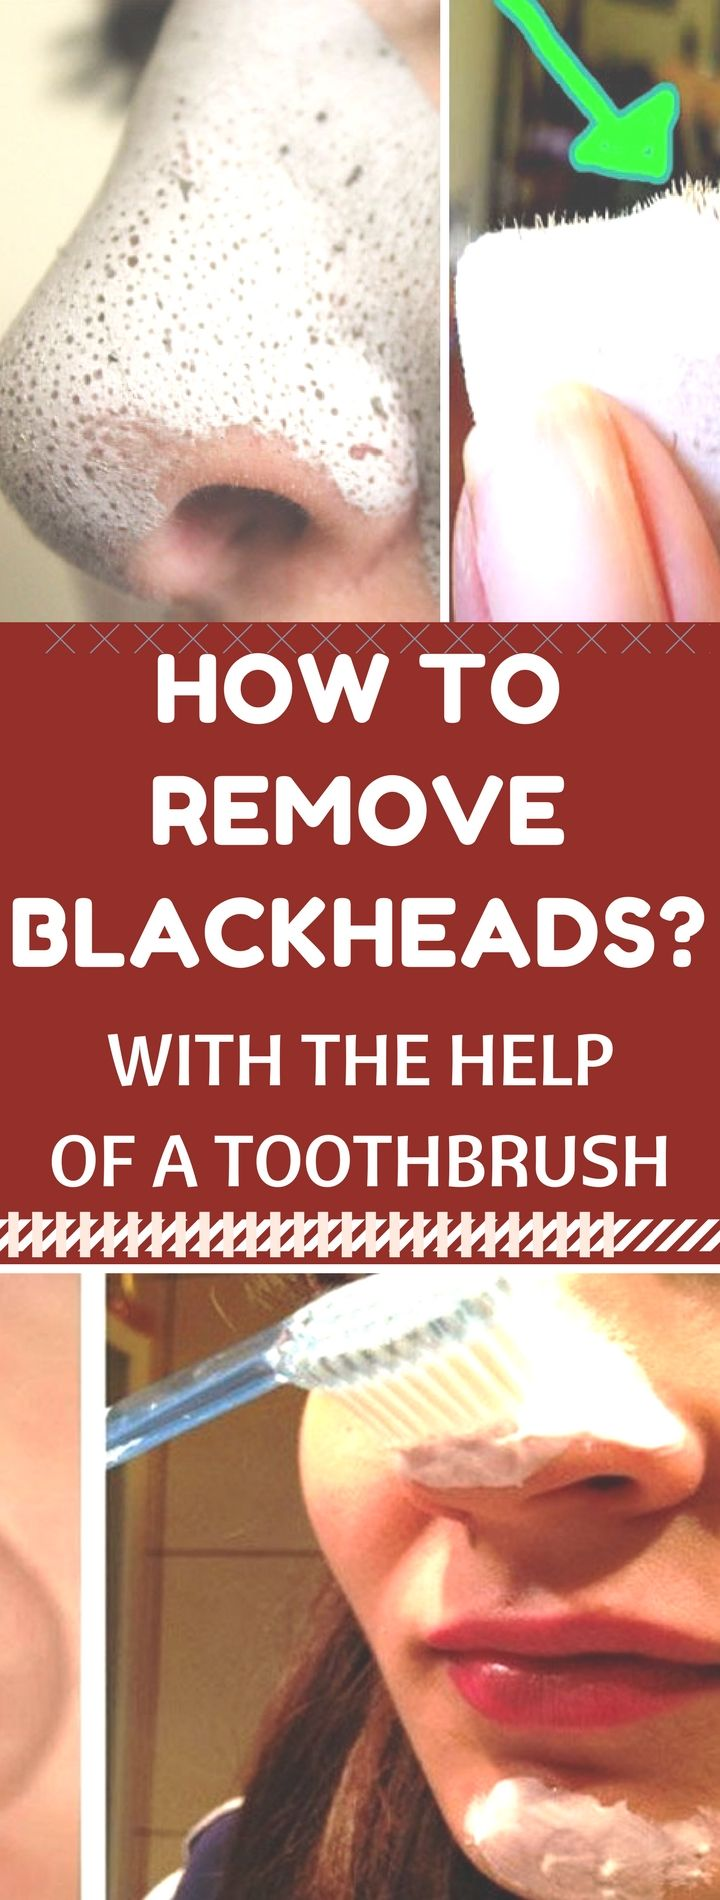 How to Remove Blackheads with the Help of a Toothbrush. Miracle. Reed this